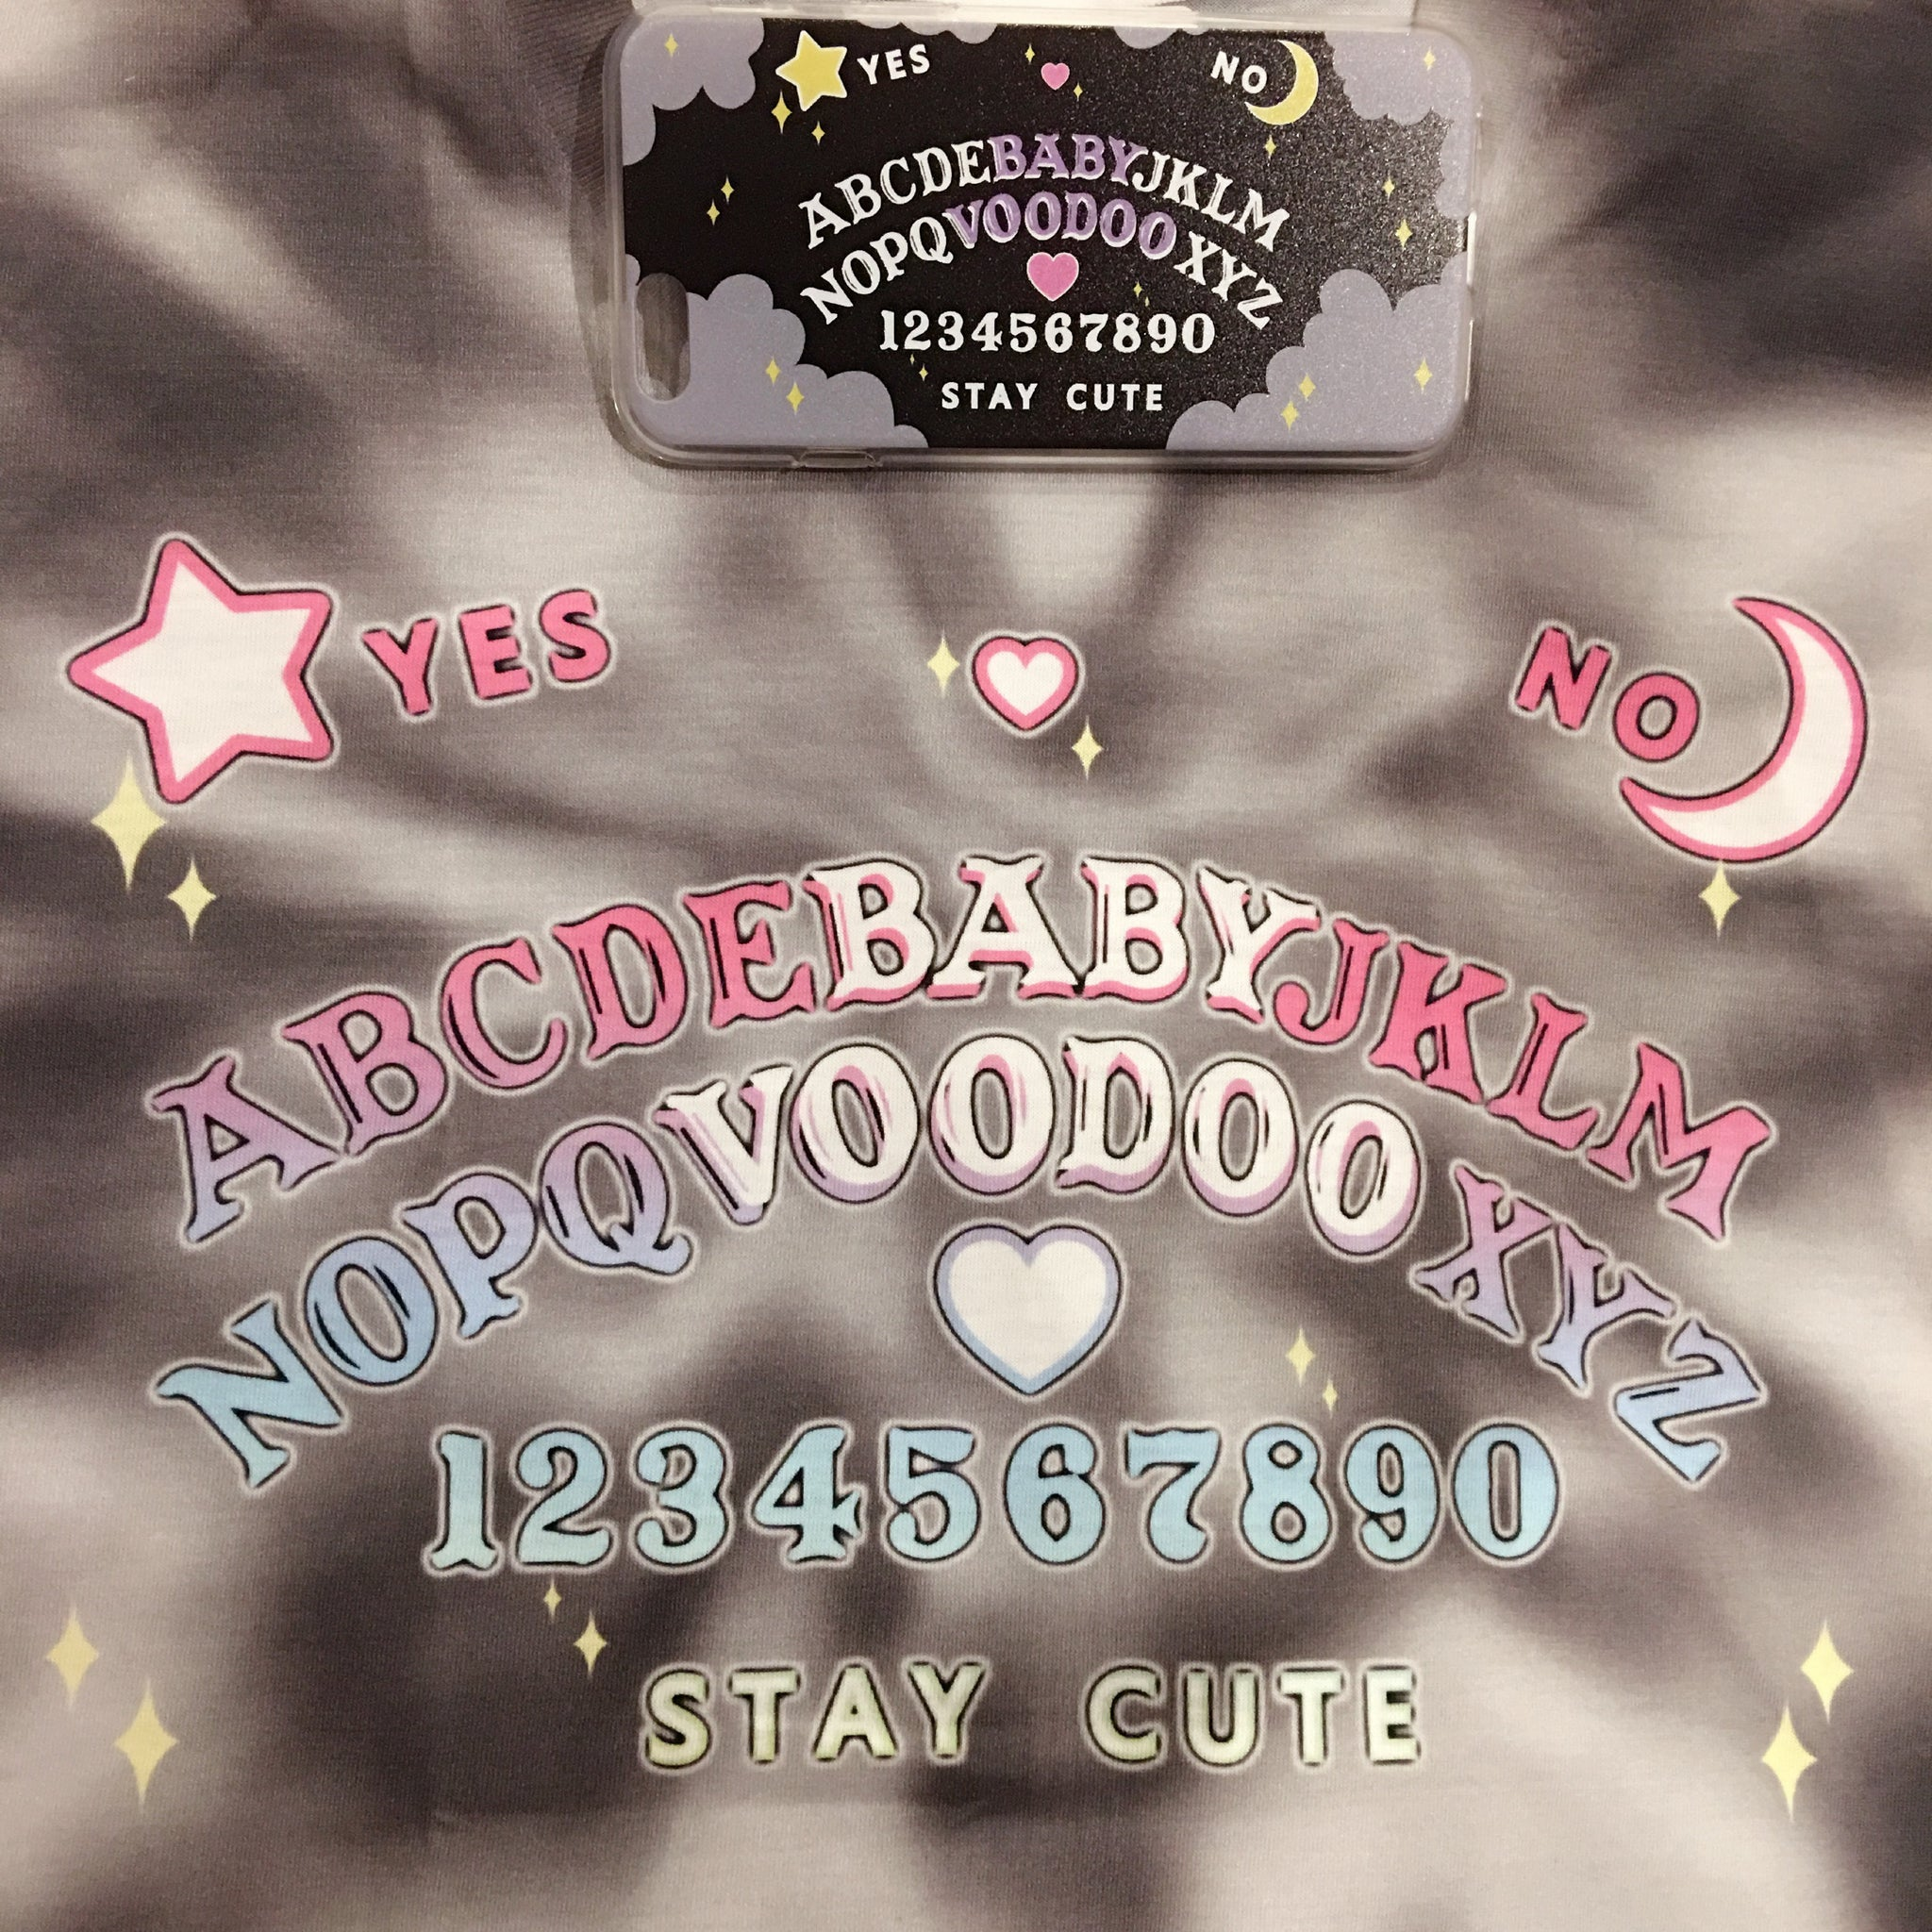 rainbow pastel ouija board fashion crop top shirt pink tie dye phone case halloween spiritual cute sexy style womens shop at BABY VOODOO - babyvoodoo.com